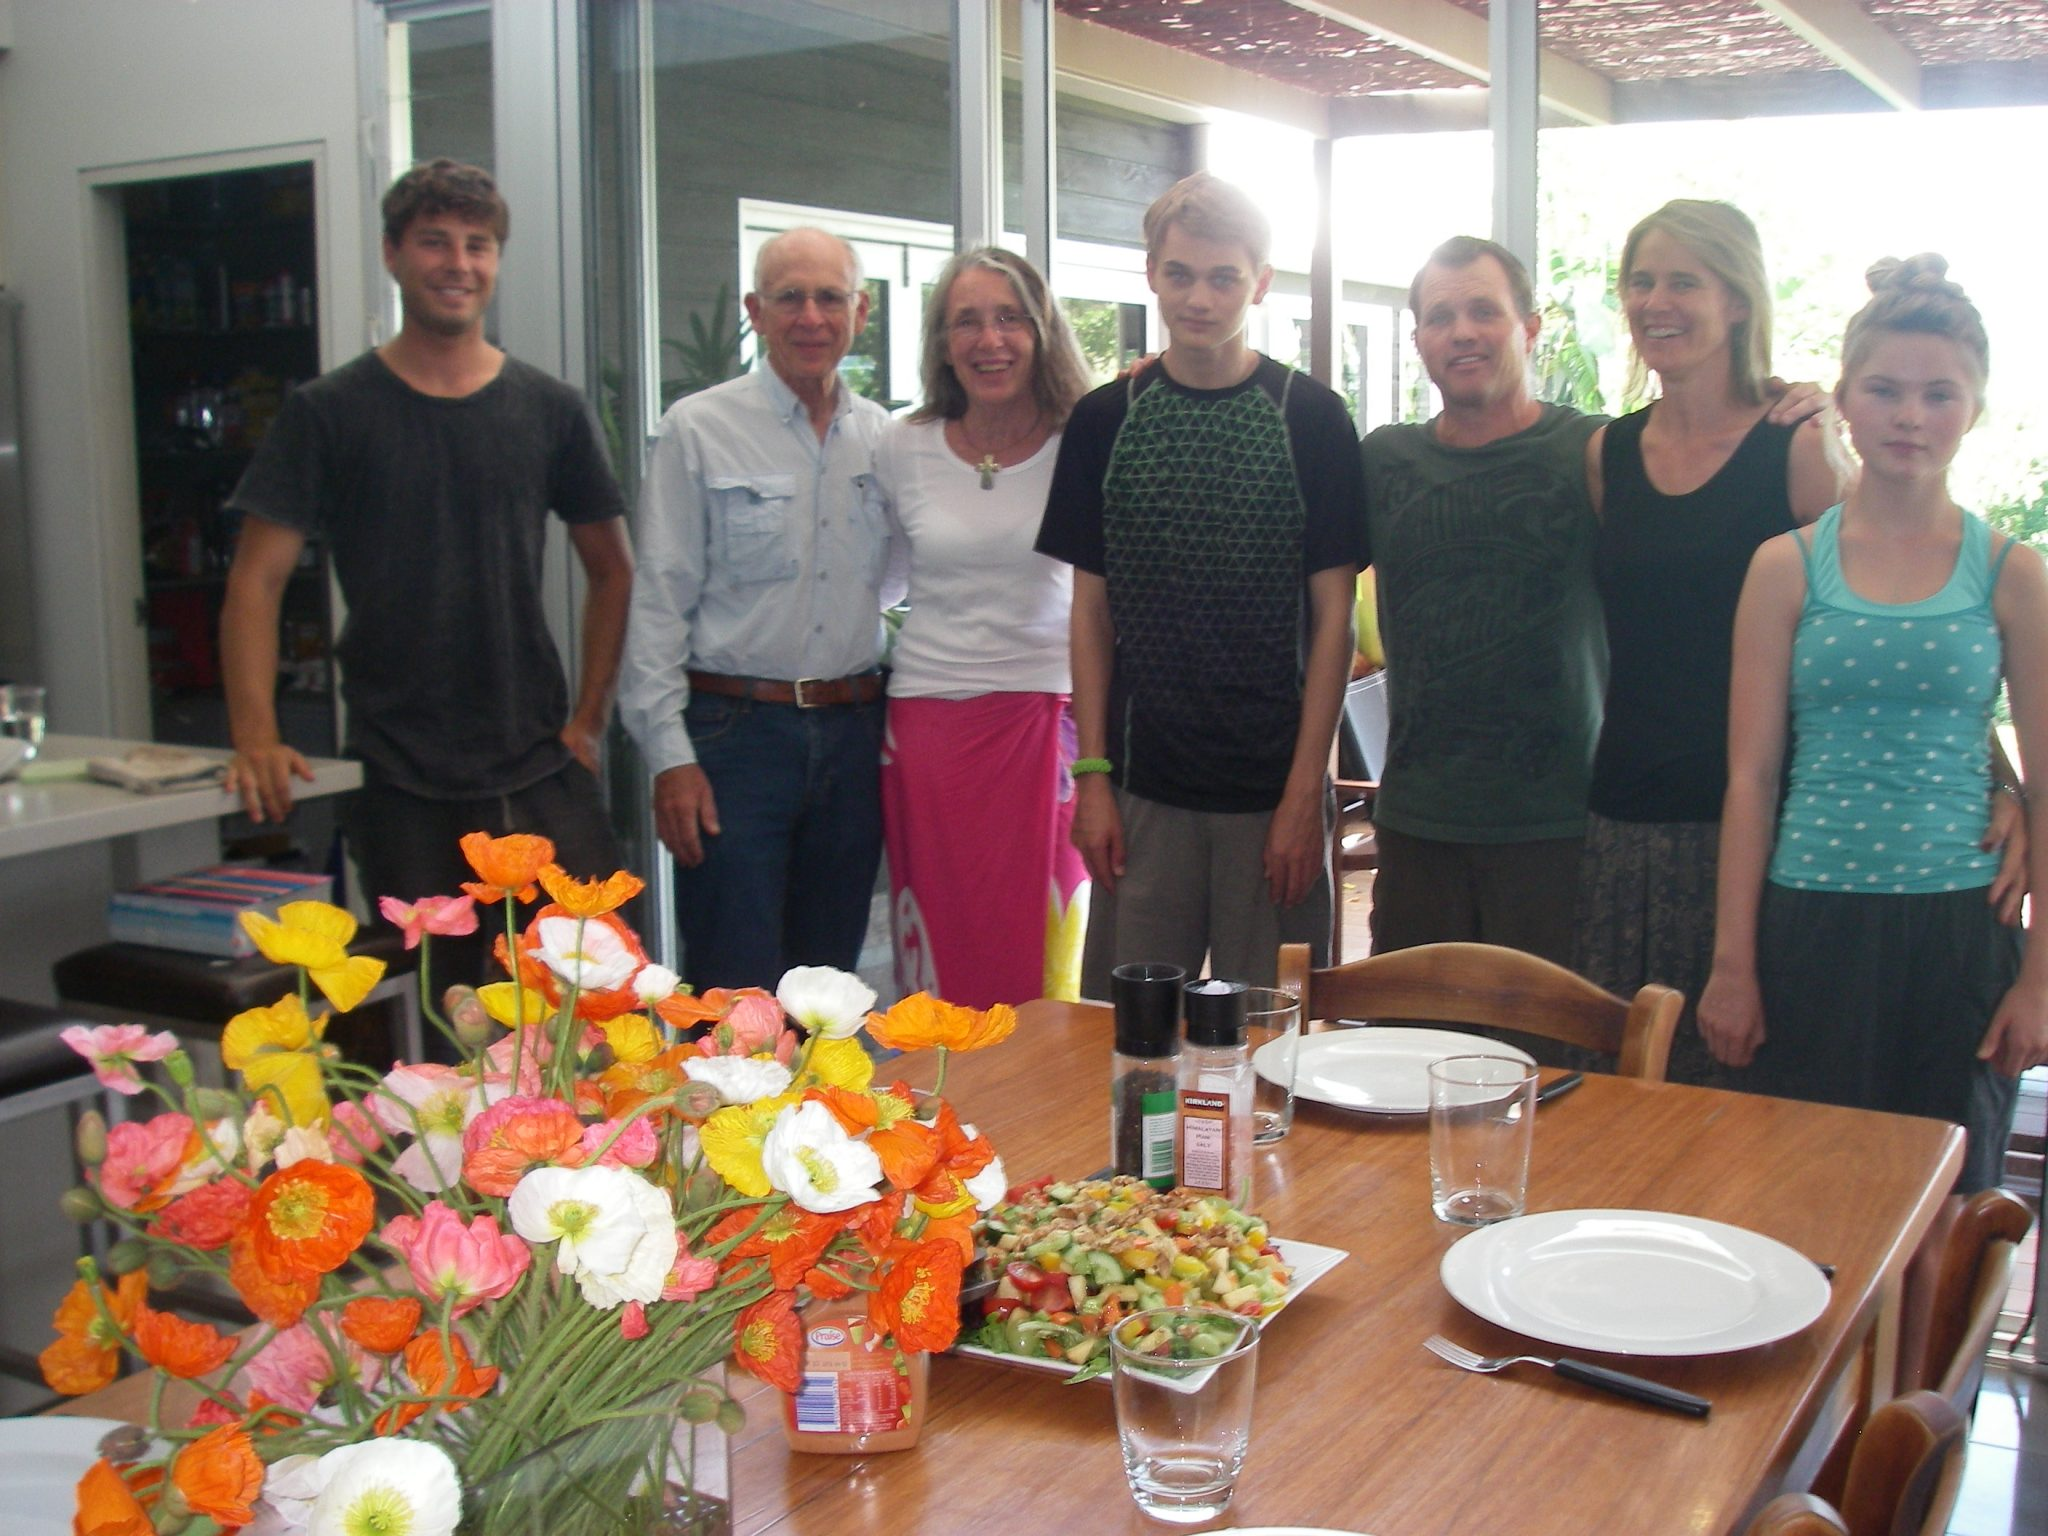 114. American Thanksgiving with friends in Berry, New South Wales, Australia